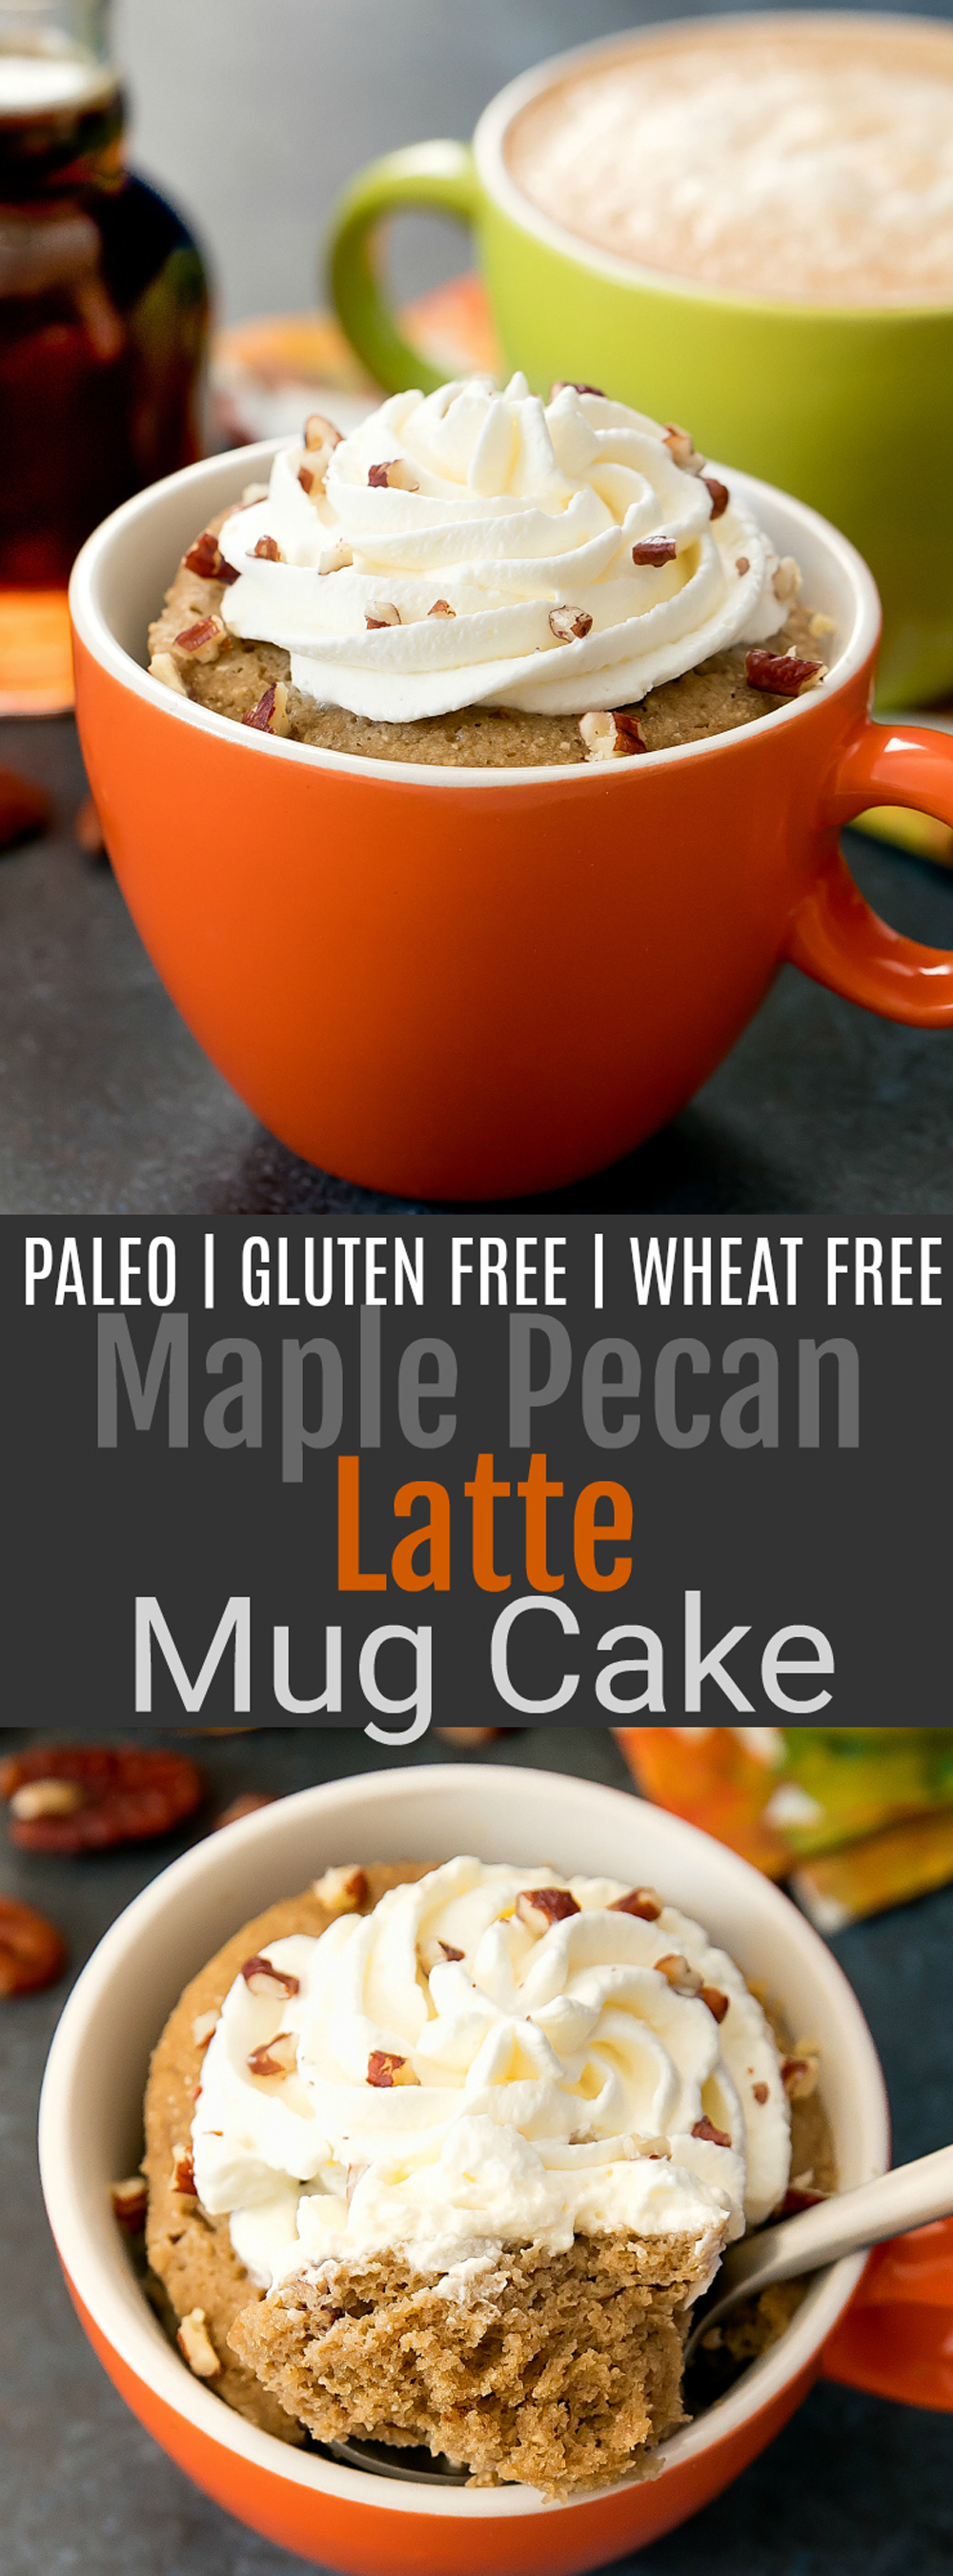 Maple Pecan Latte Mug Cake. A single serving cake that cooks in the microwave in less than 2 minute. This cake is also paleo and gluten free.